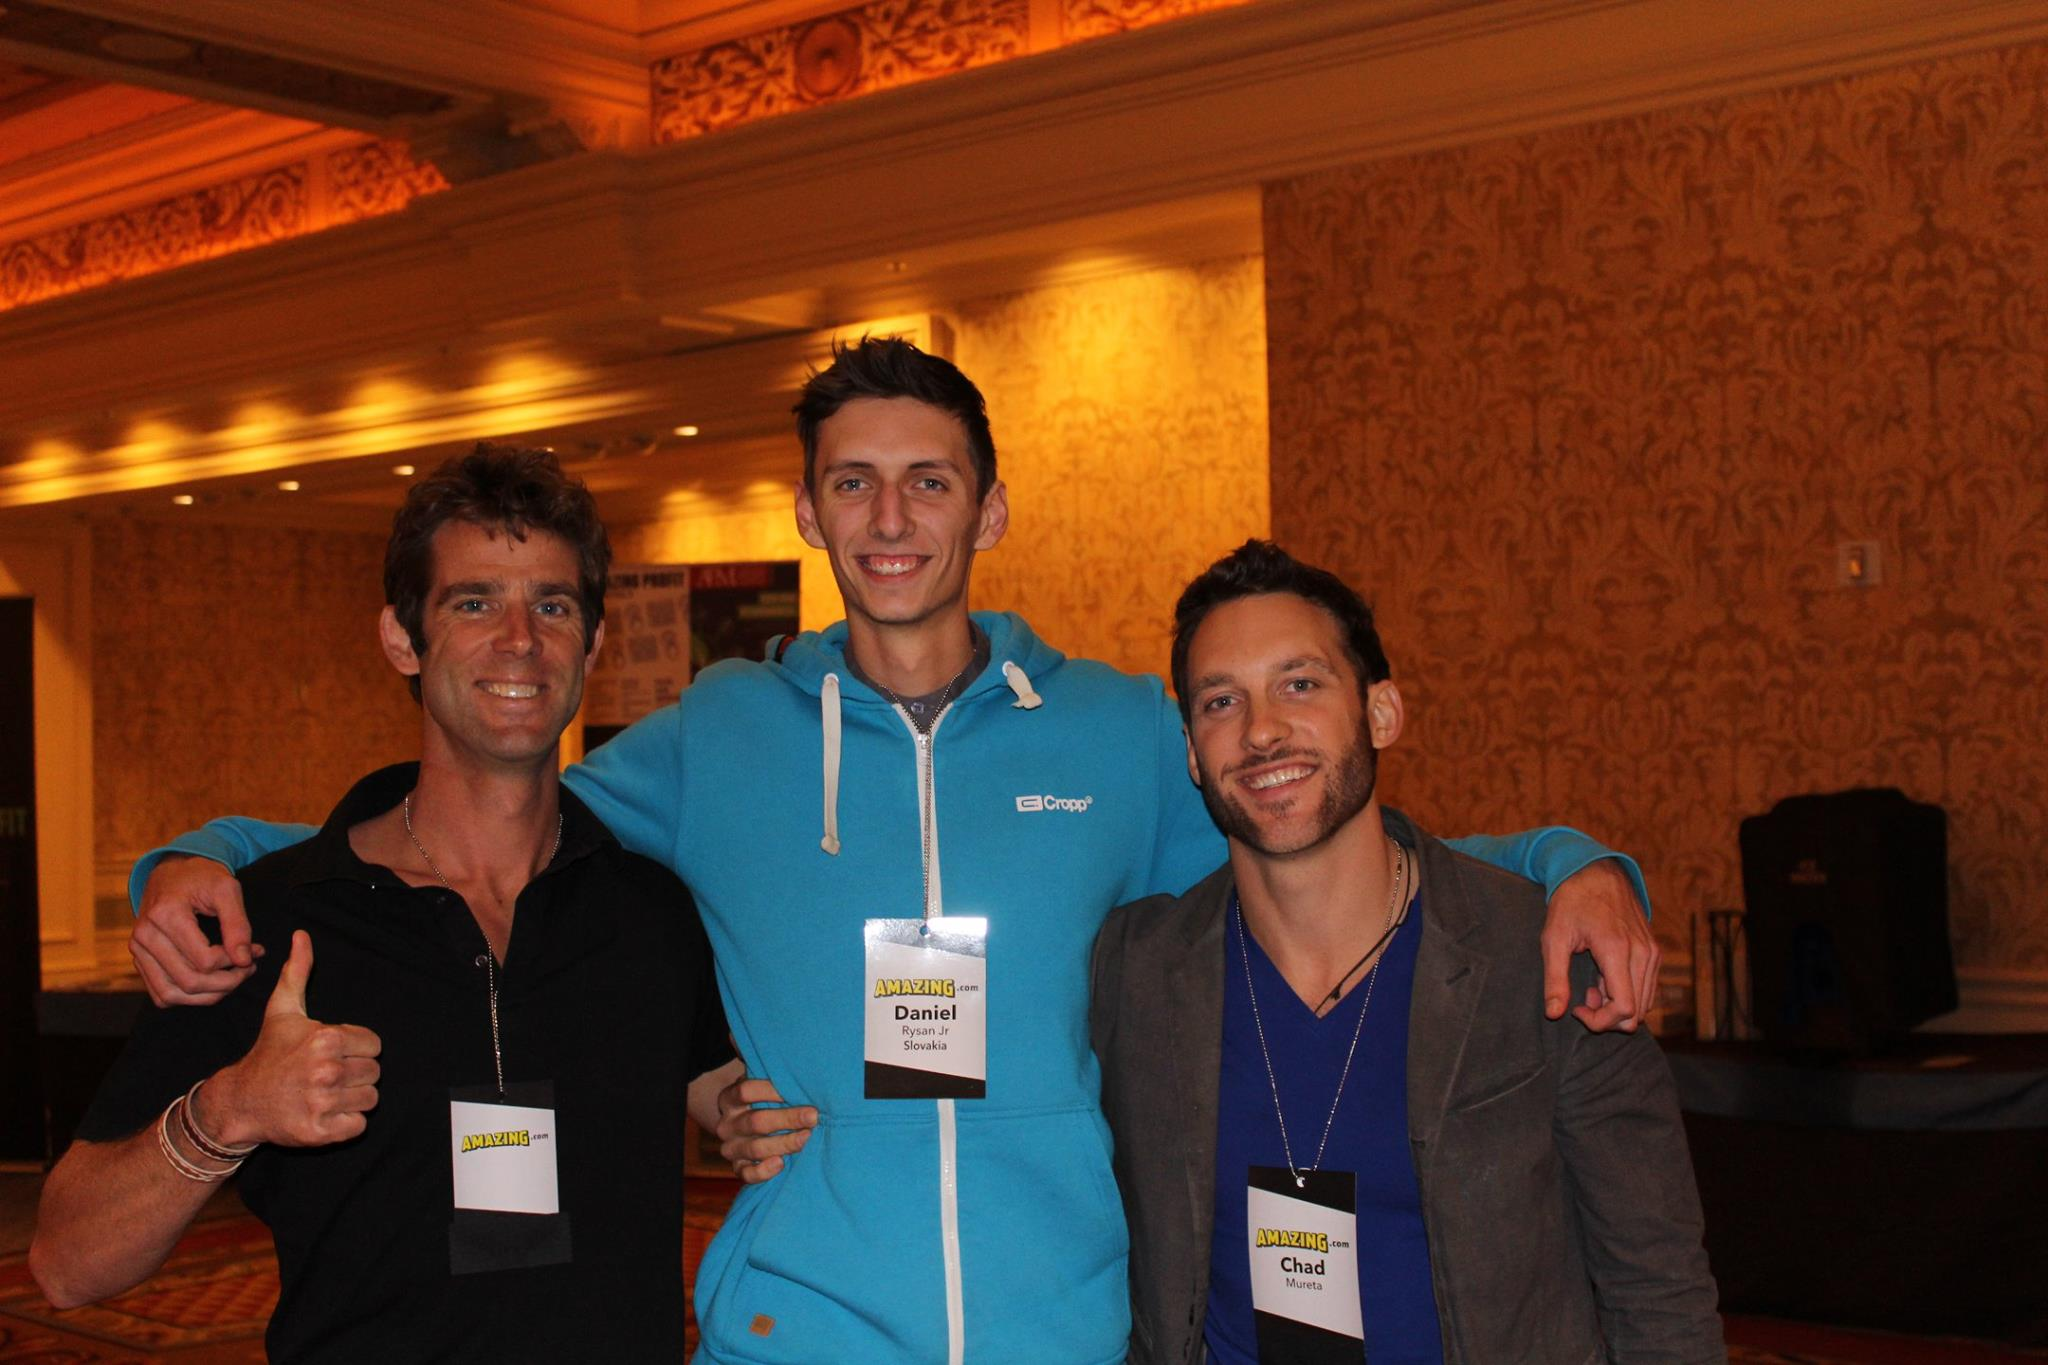 Daniel Rysan, Chad Mureta and Carter Thomas in Las Vegas